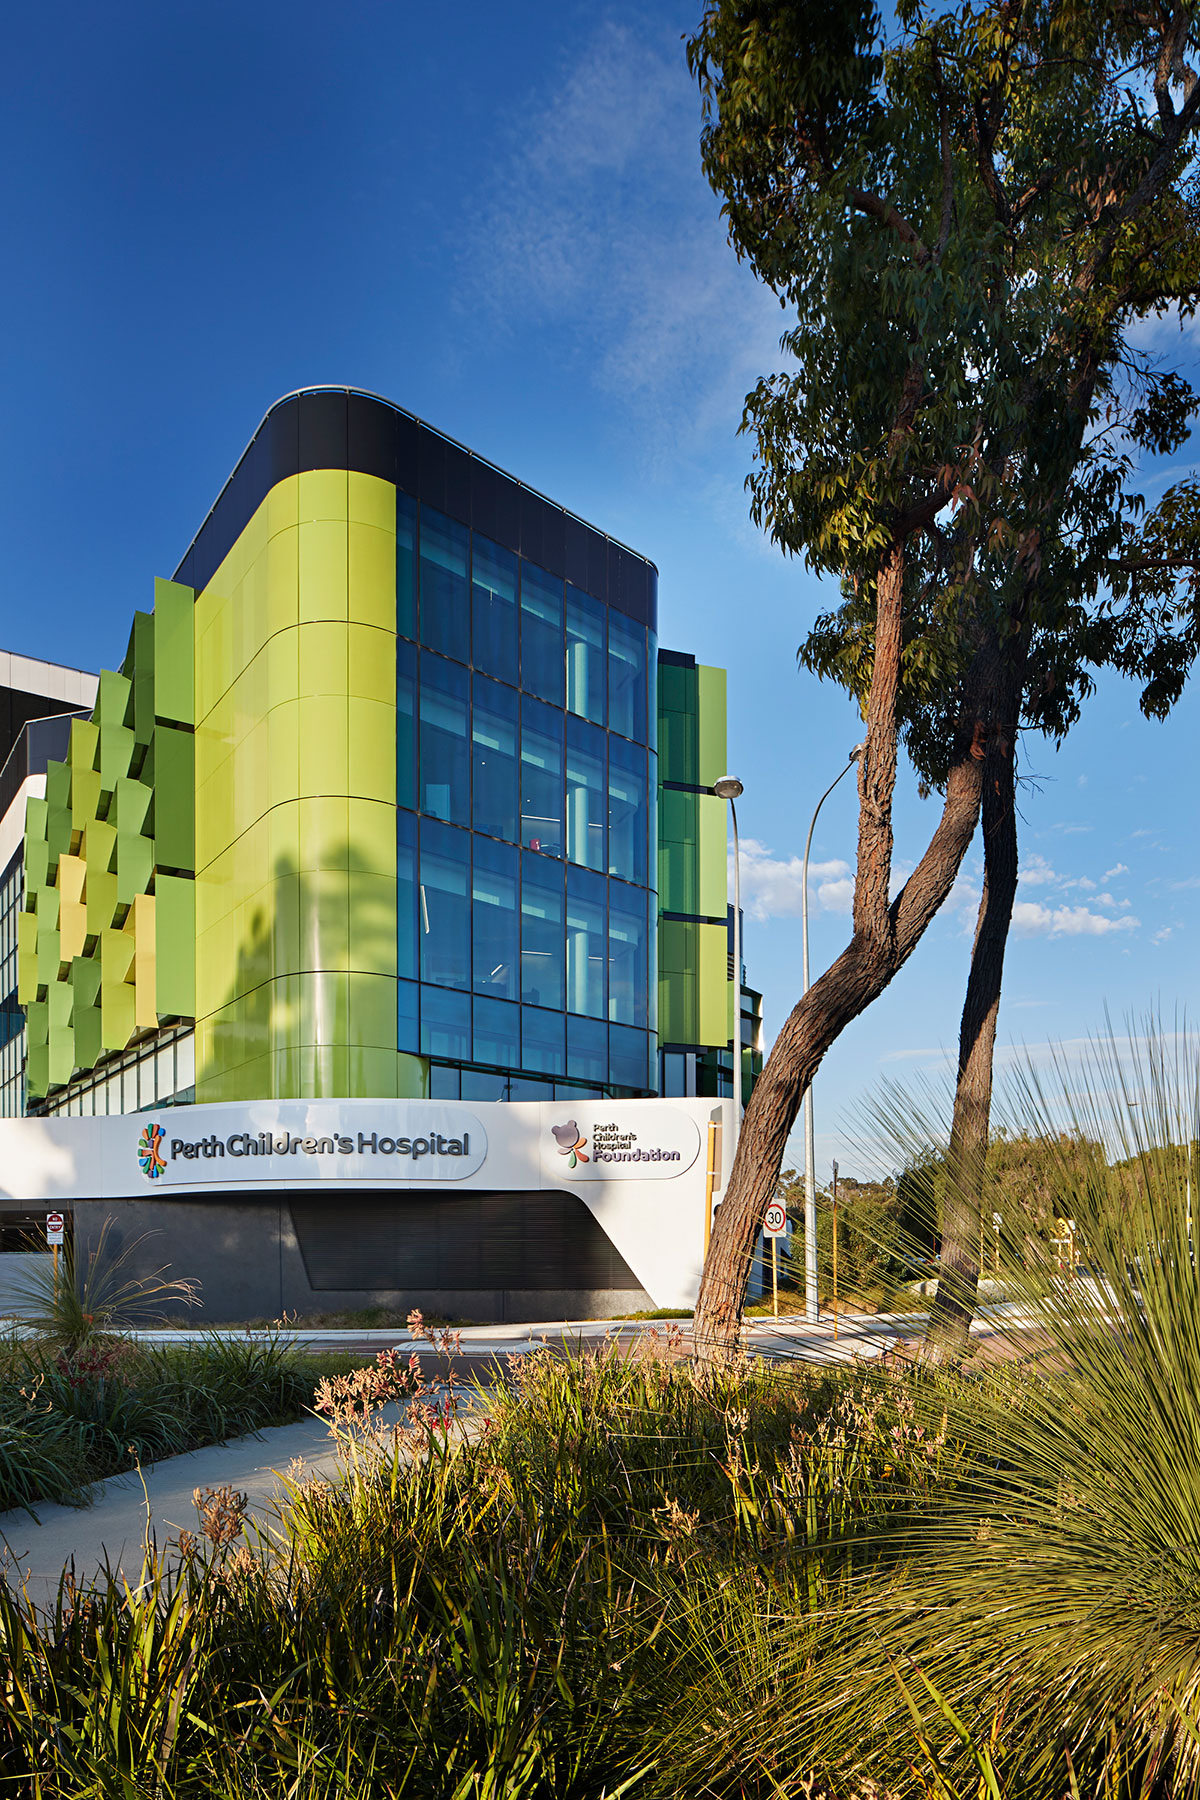 Perth Children's Hospital, BLP